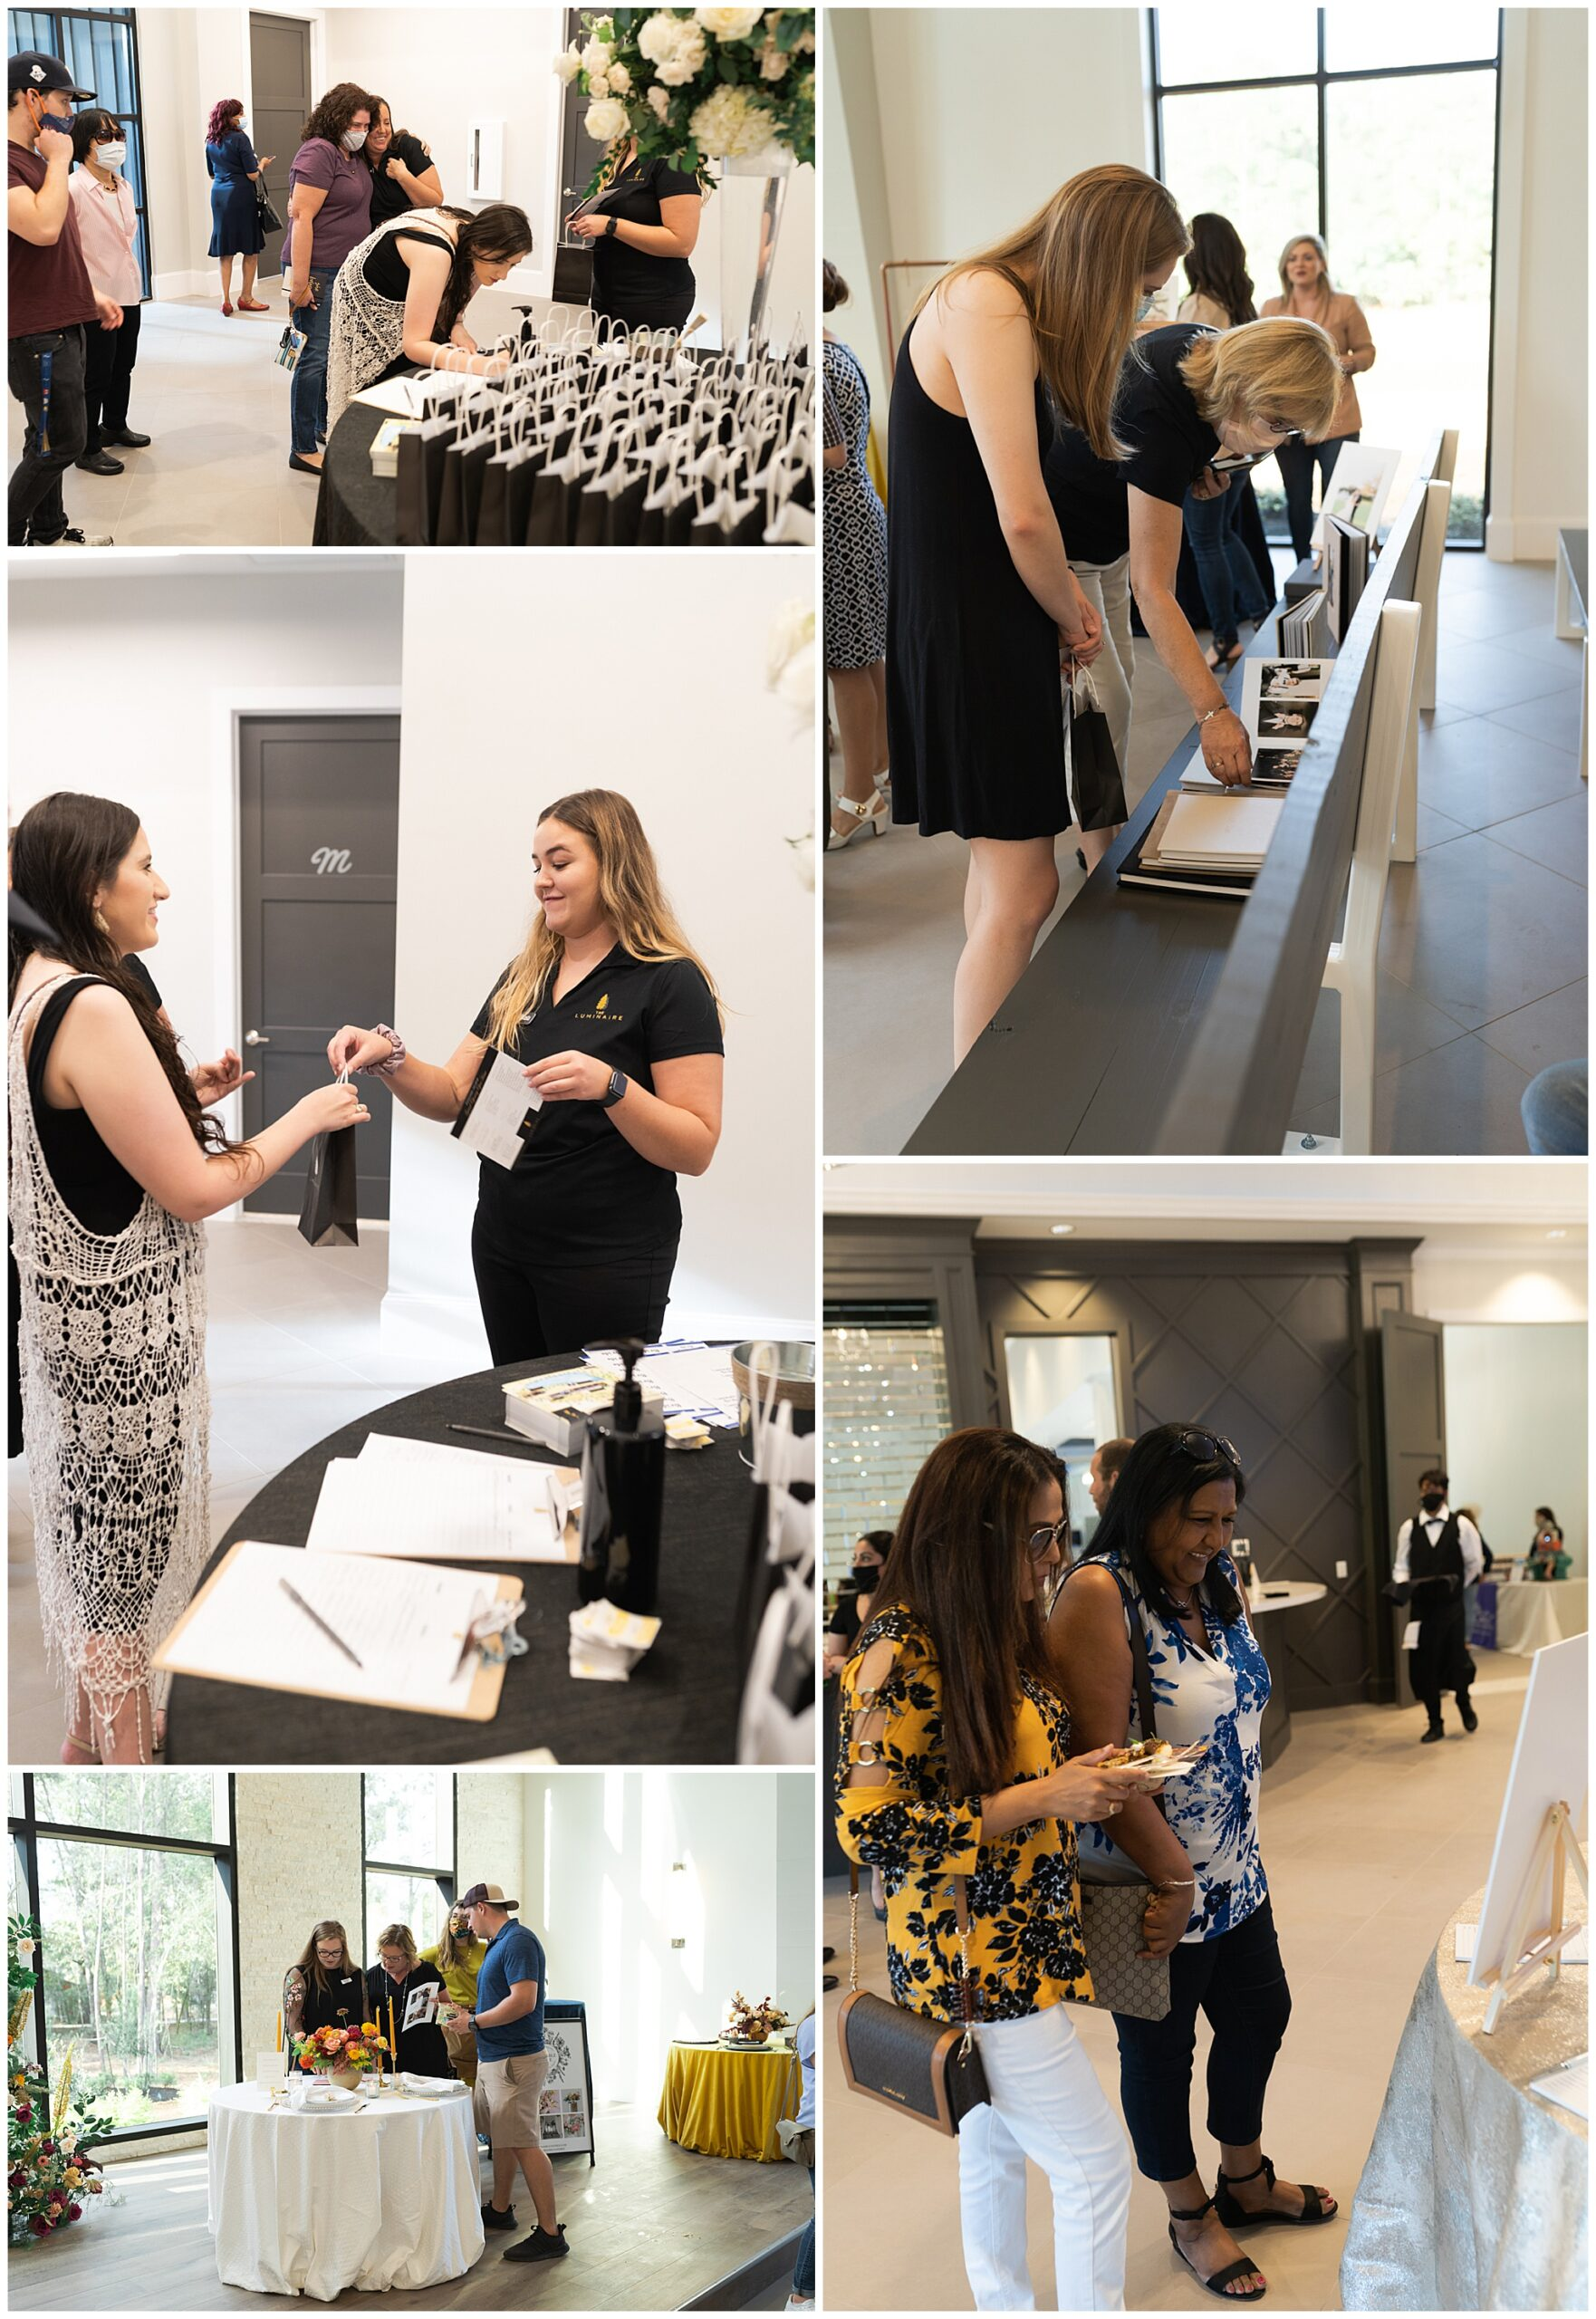 The Luminaire Houston wedding venue at their open house vendor tables captured by Swish and Click Photography